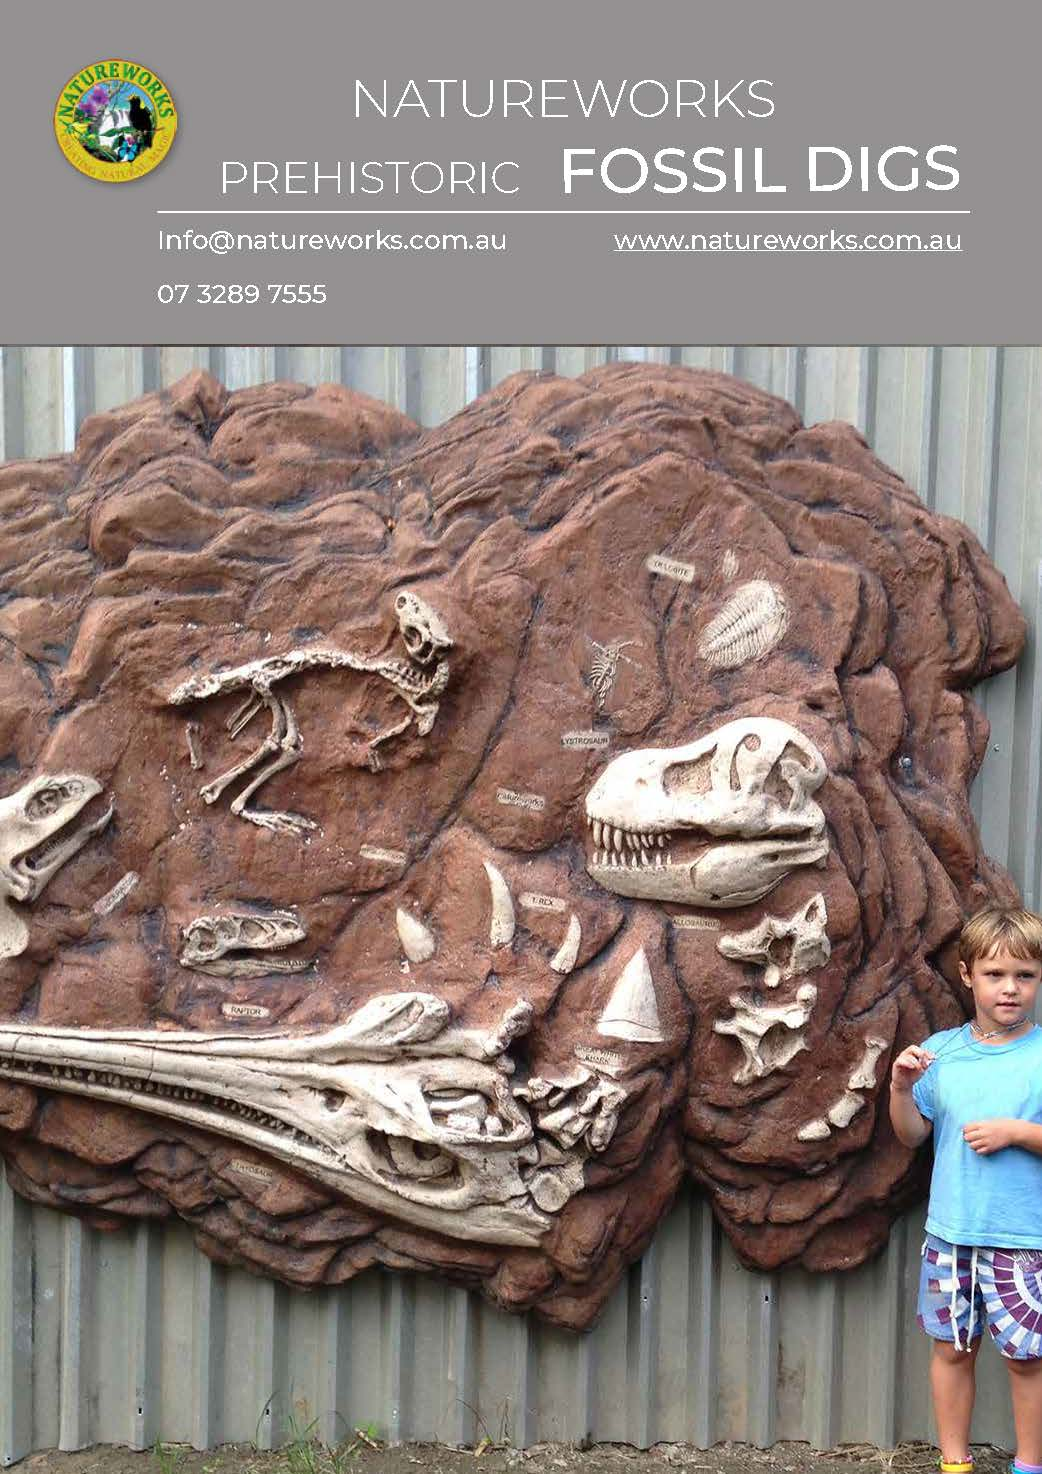 Quality Fossil digs for Childcare centres - schools, museums, outdoor playgrounds - Prehistoric theming